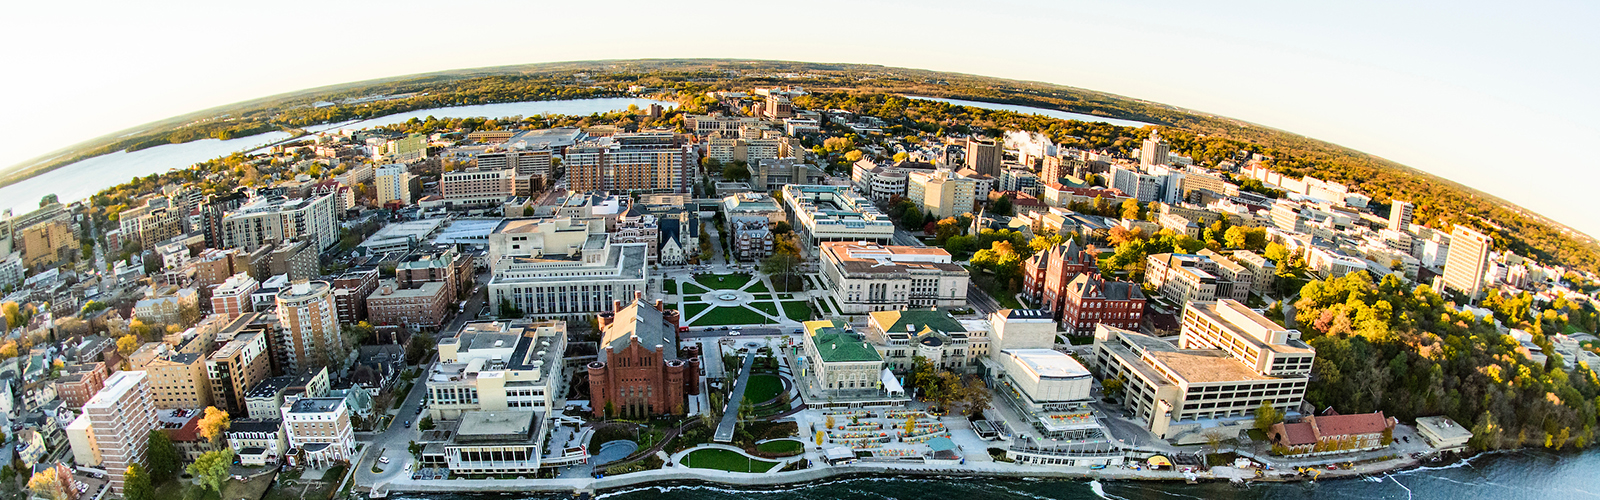 Aerial image of UW campus